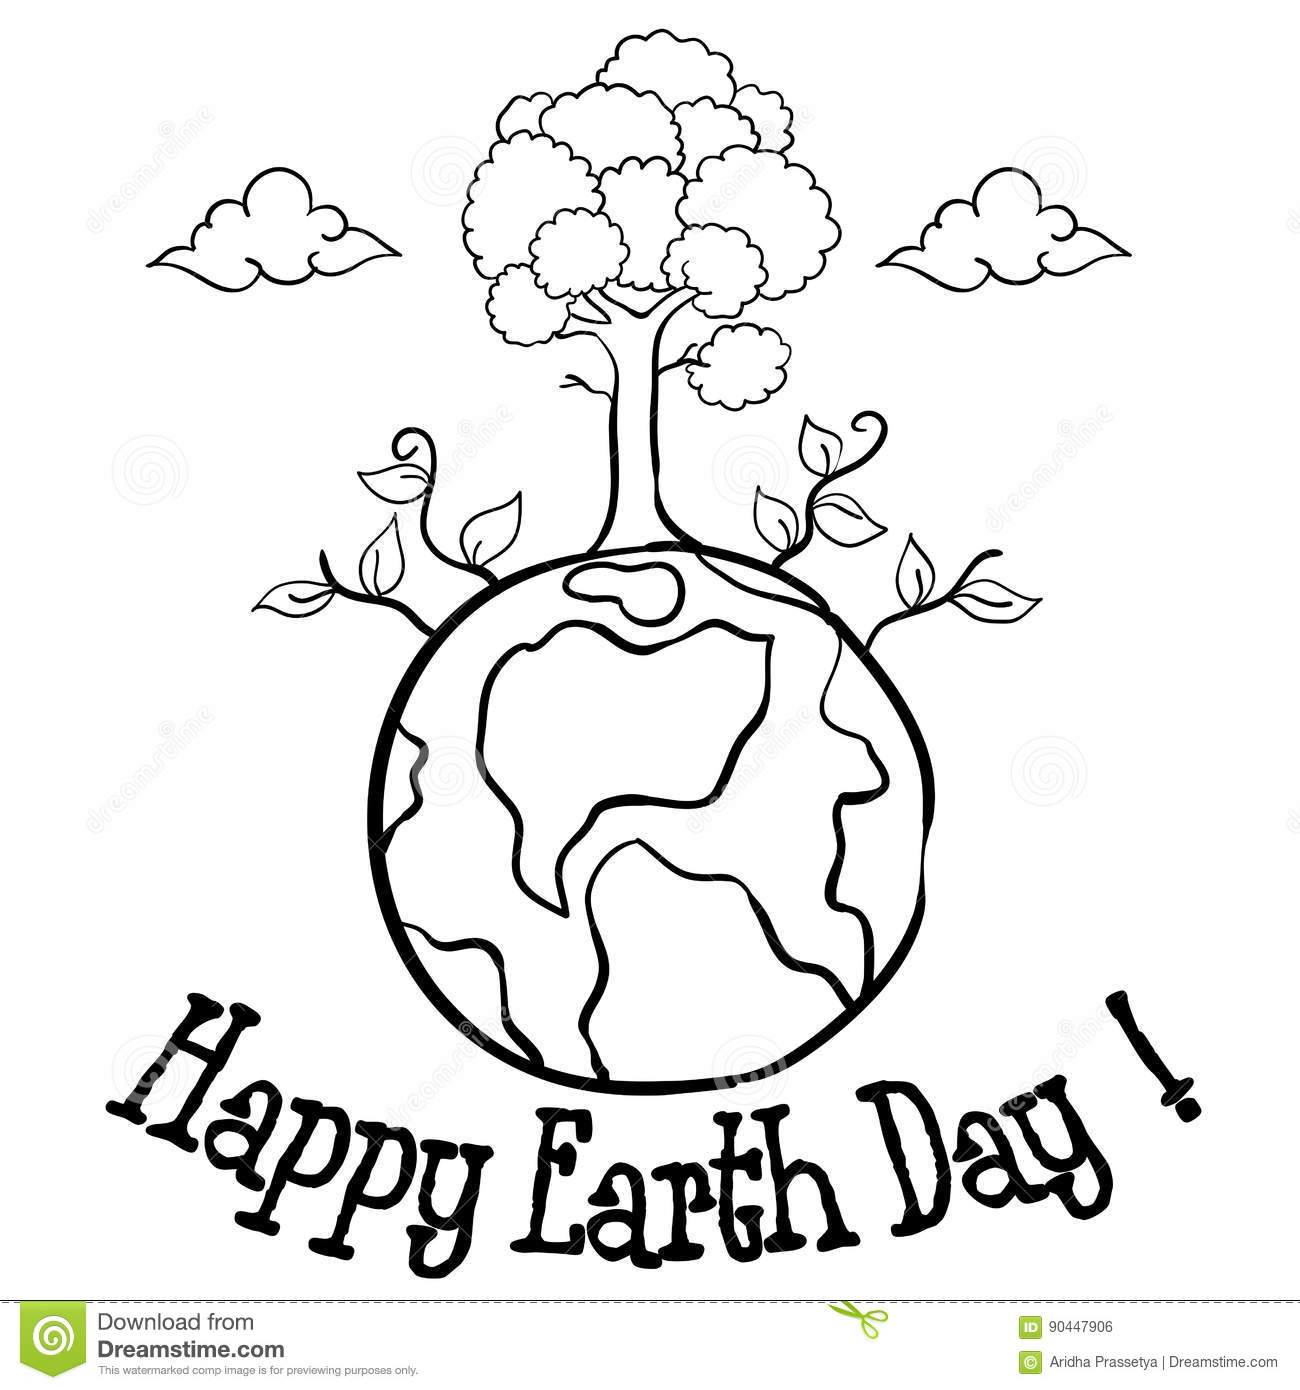 Happy Earth Day With Tree Hand Draw Stock Vector ...